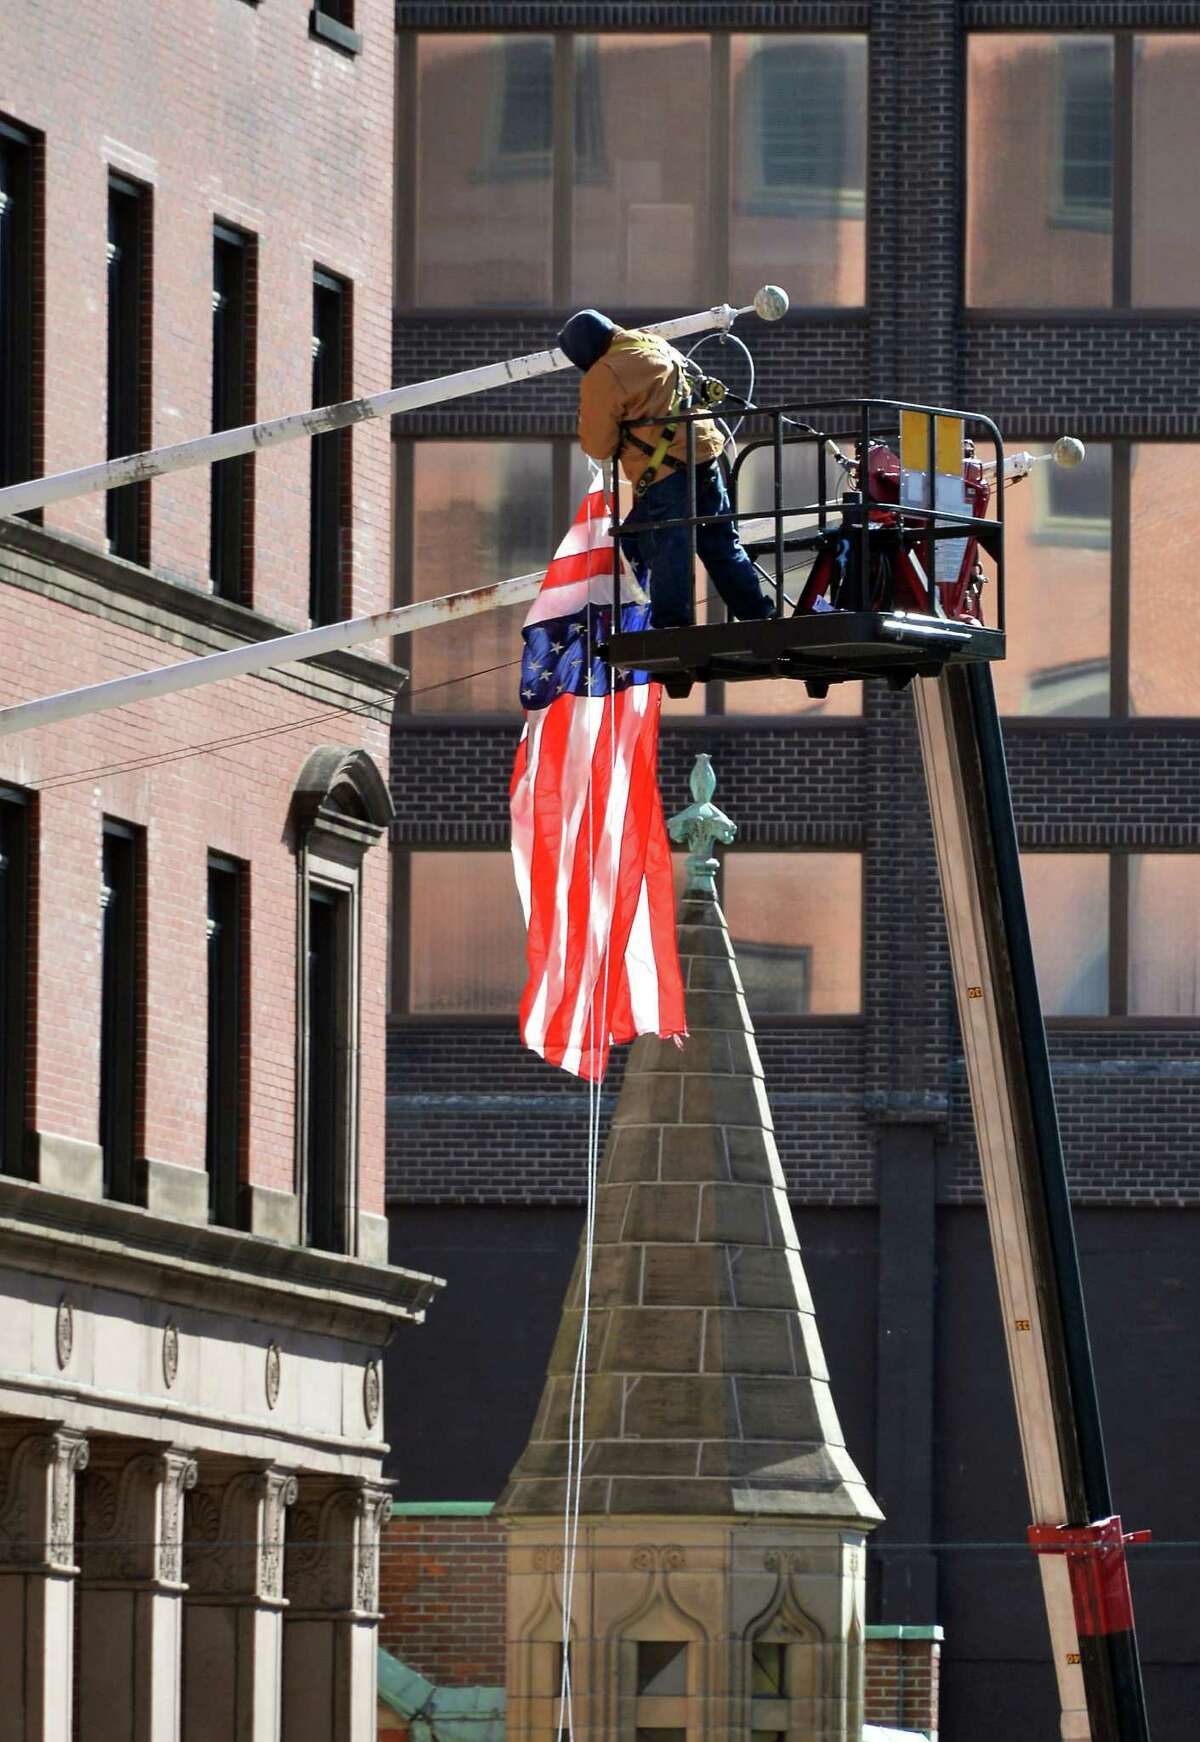 Joe Boemio of Saxton Sign of Castleton restrings an American flag that became tangled at the Bank of America building at State and Pearl Streets Friday, Feb. 26, 2016, in Albany, N.Y. (John Carl D'Annibale / Times Union)